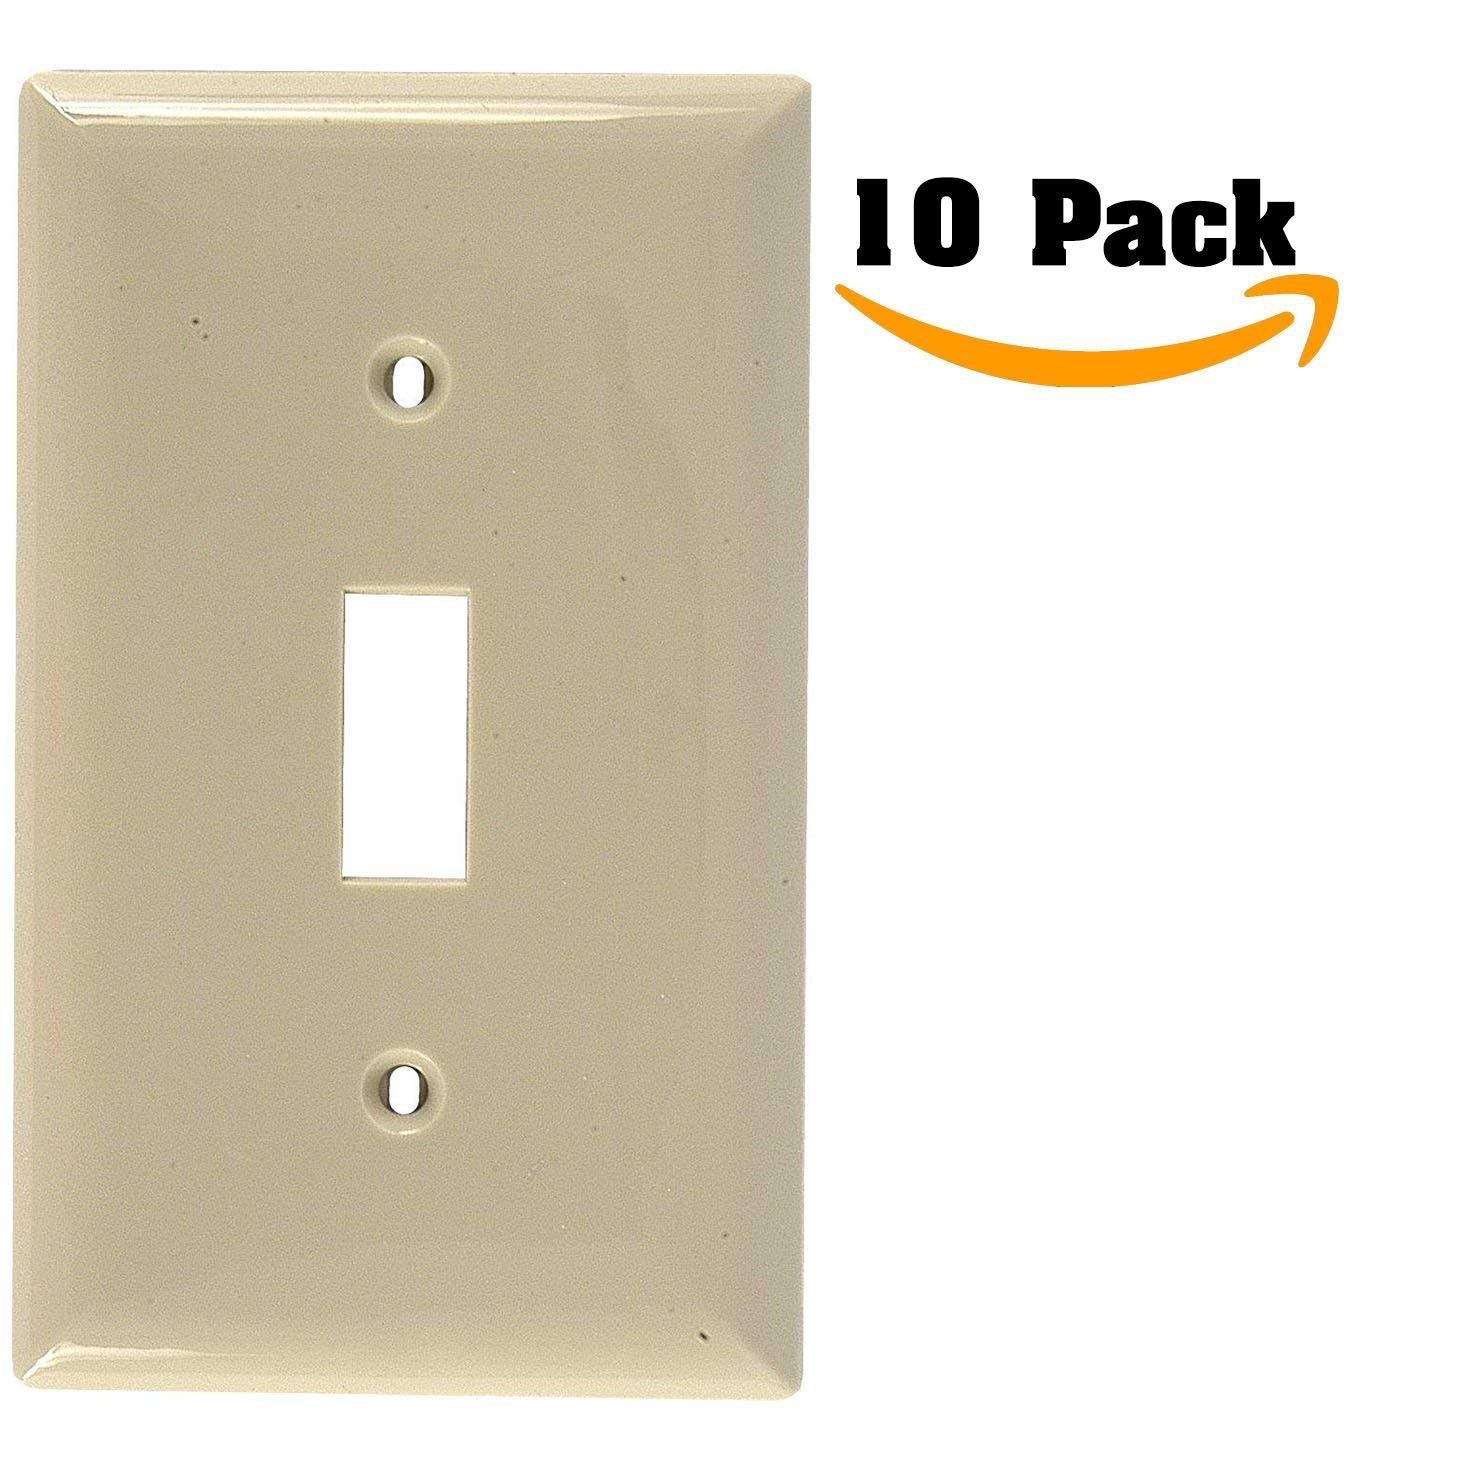 Cheap Blank Electrical Cover Plates Find Blank Electrical Cover